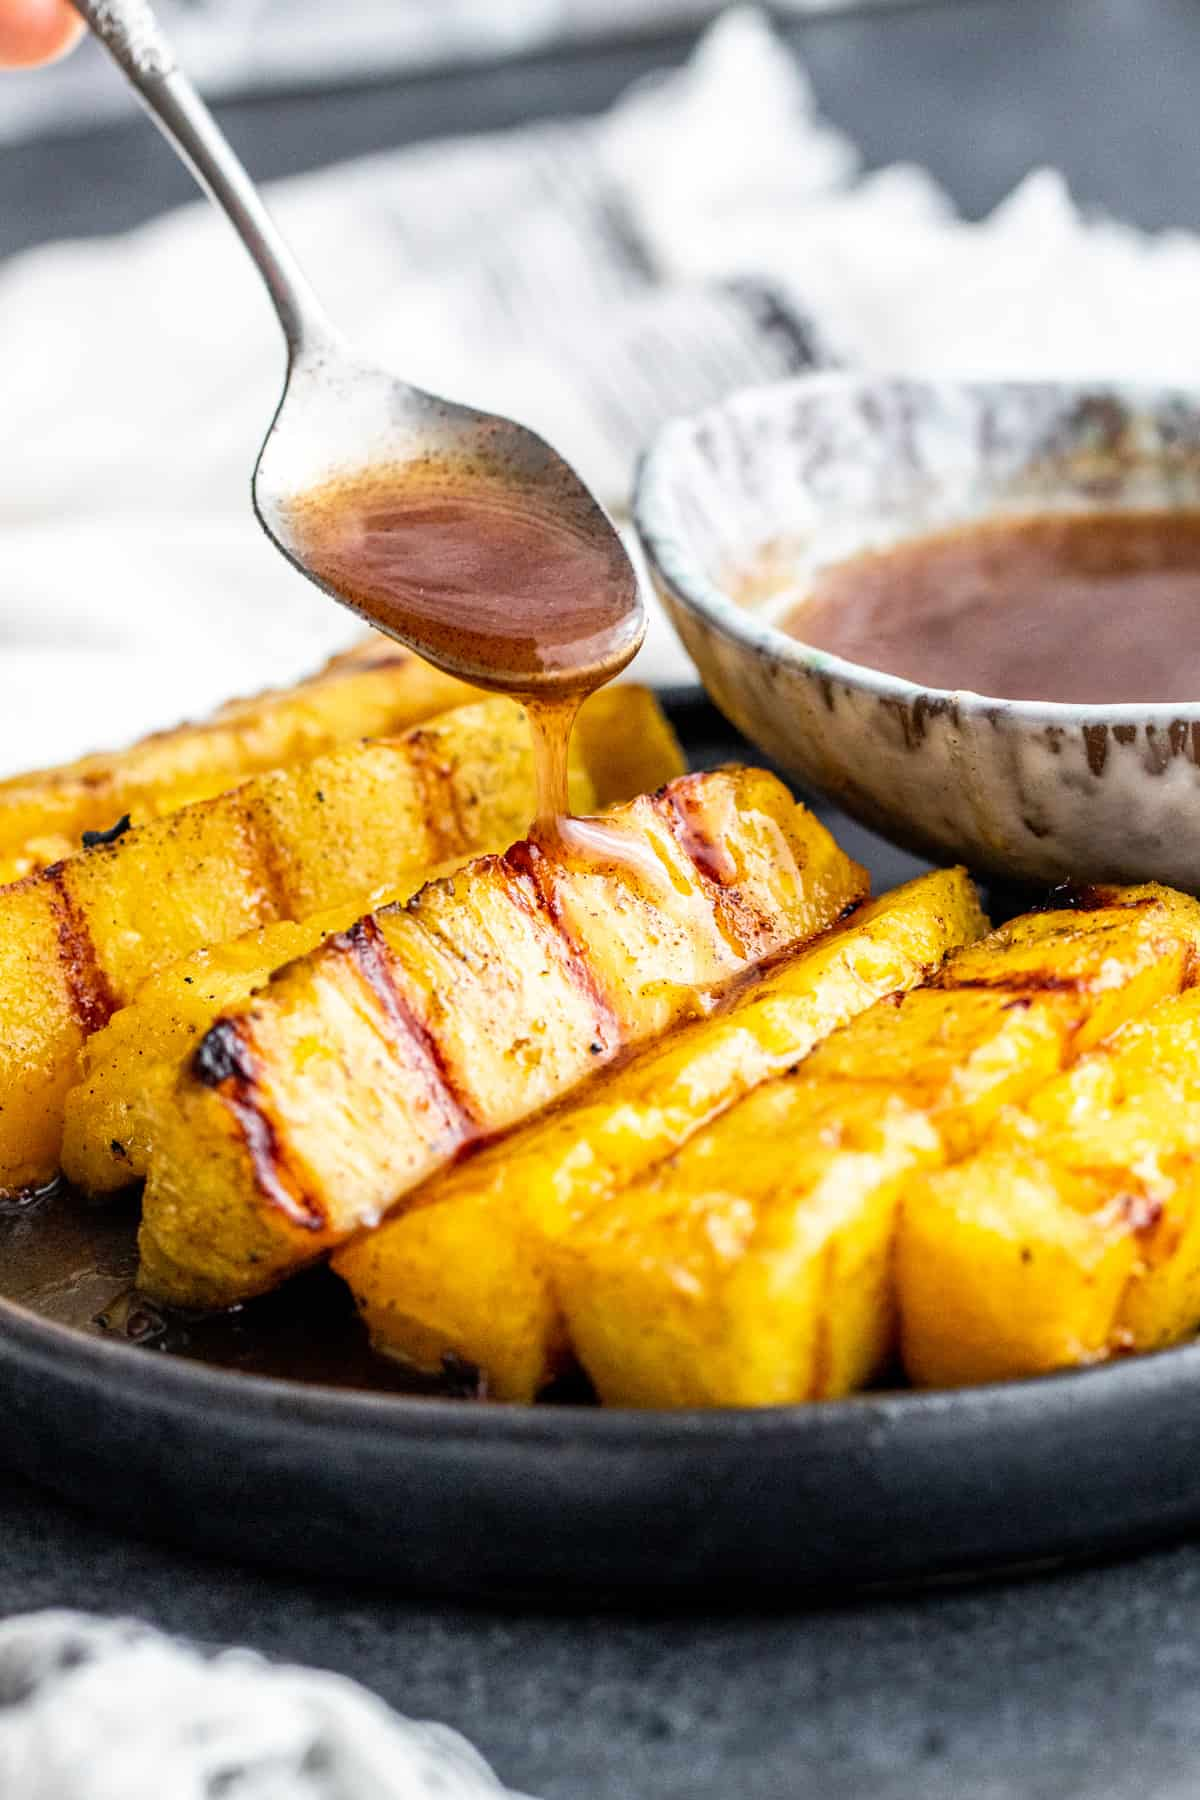 Hand using silver spoon to drizzle cinnamon sauce on cooked pineapple.